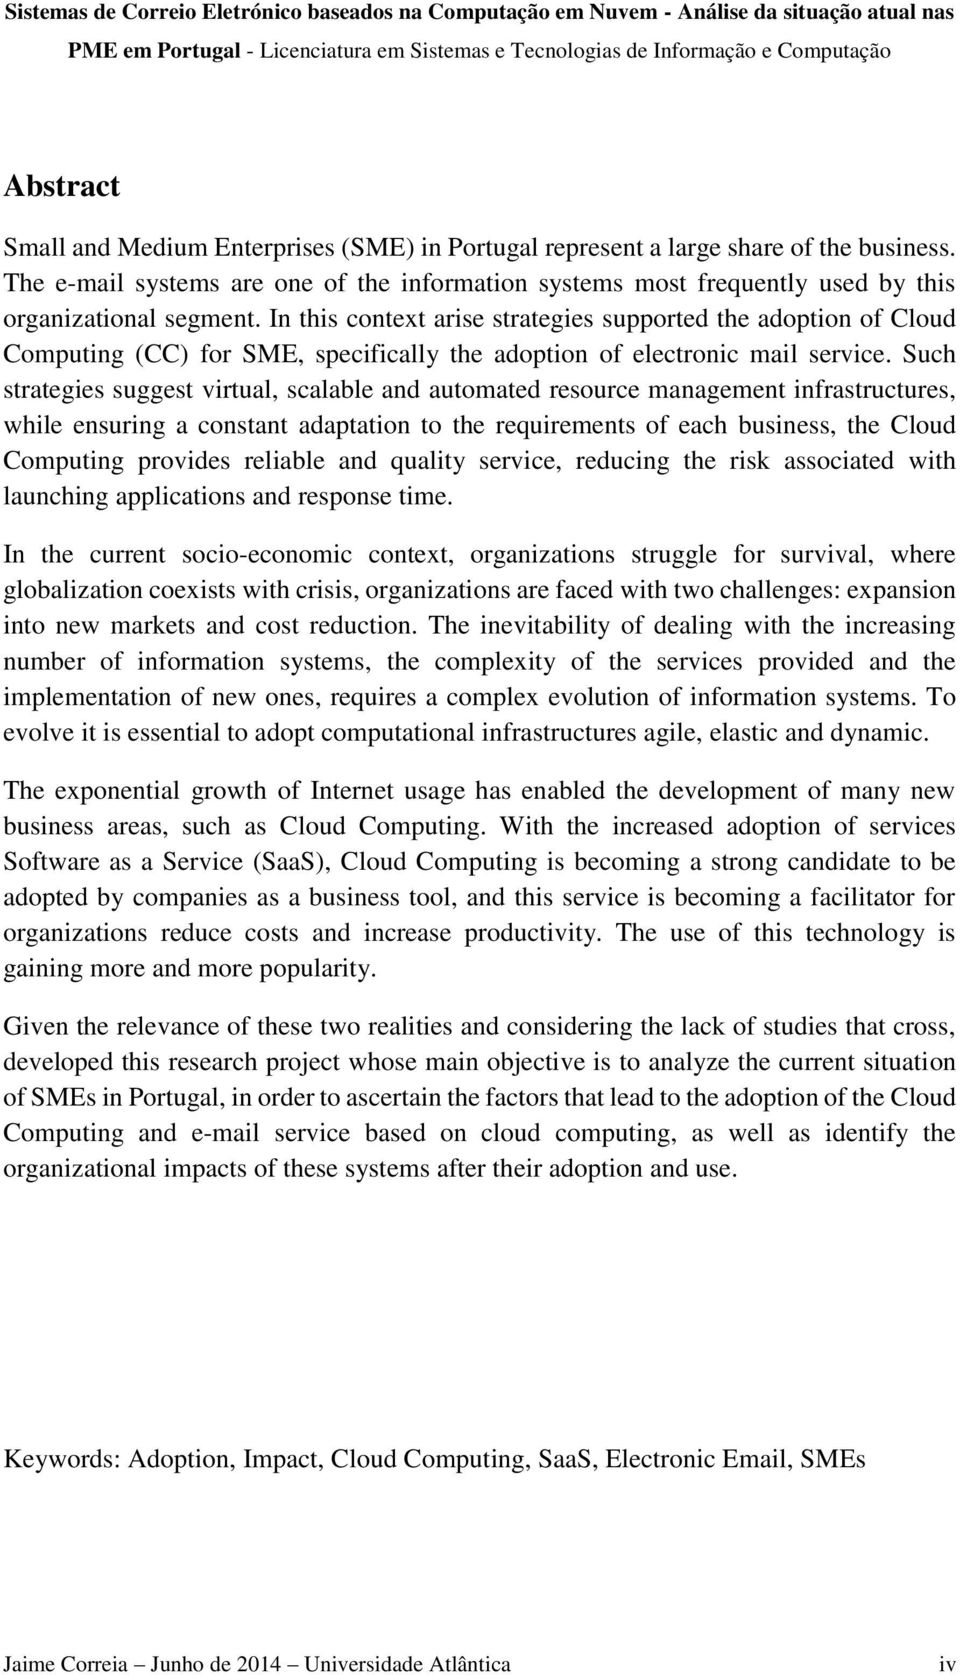 In this context arise strategies supported the adoption of Cloud Computing (CC) for SME, specifically the adoption of electronic mail service.